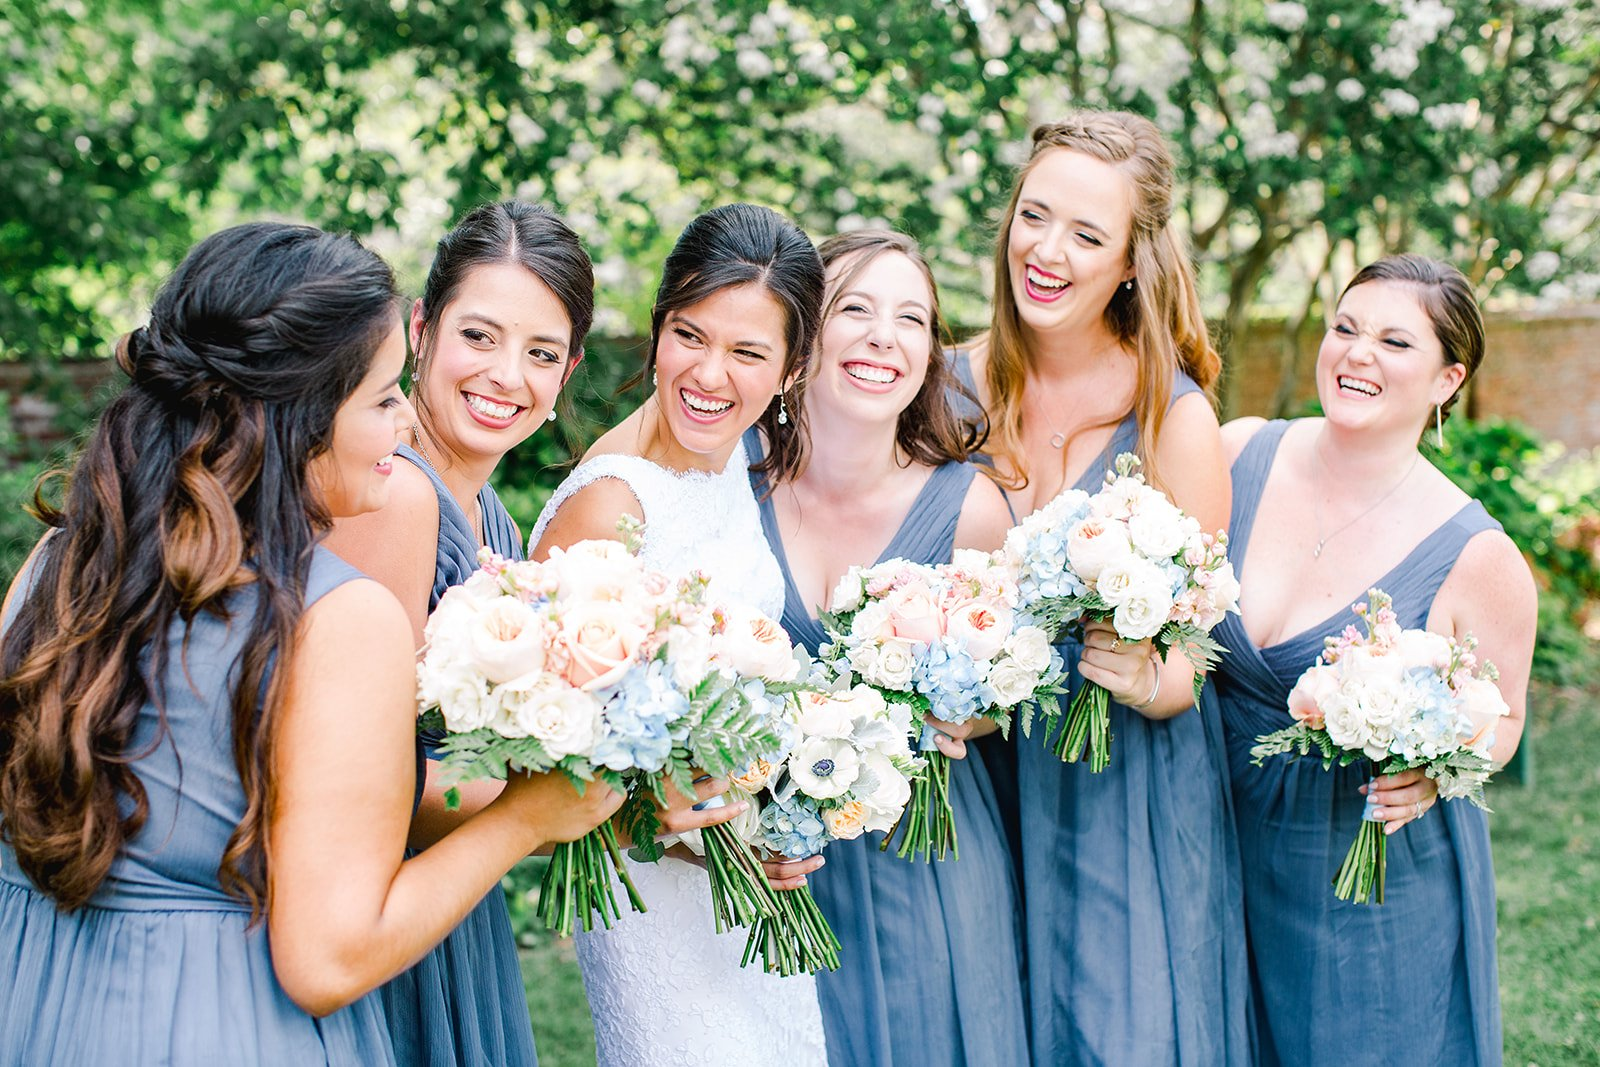 This Blue And White Wedding Featured A Chinoiserie Garden Party Theme